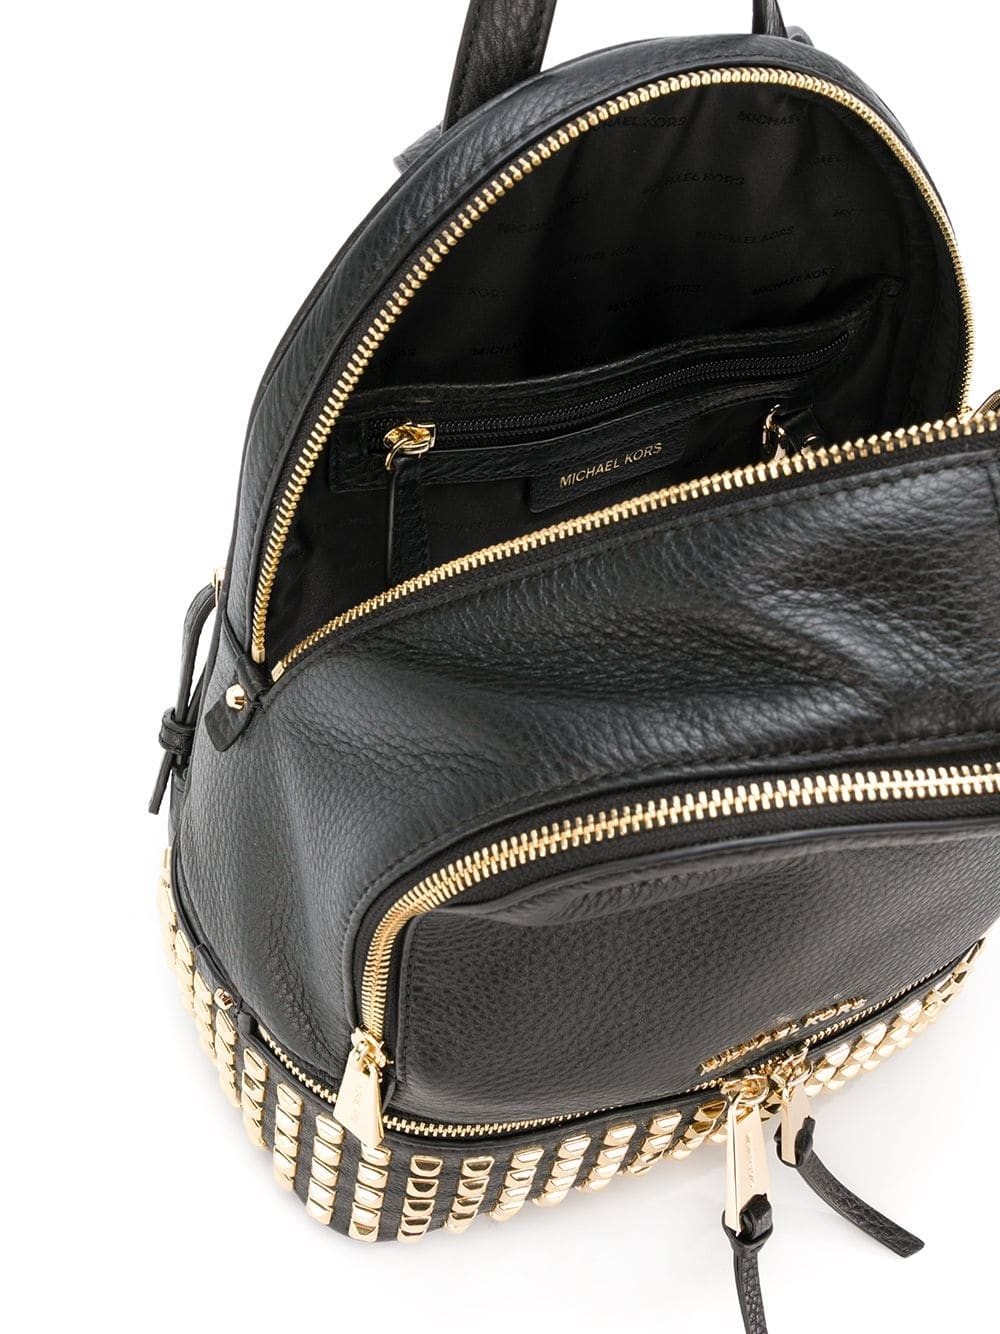 85df54eacaff5 michael kors mk LOGO BACKPACK available on montiboutique.com - 27227